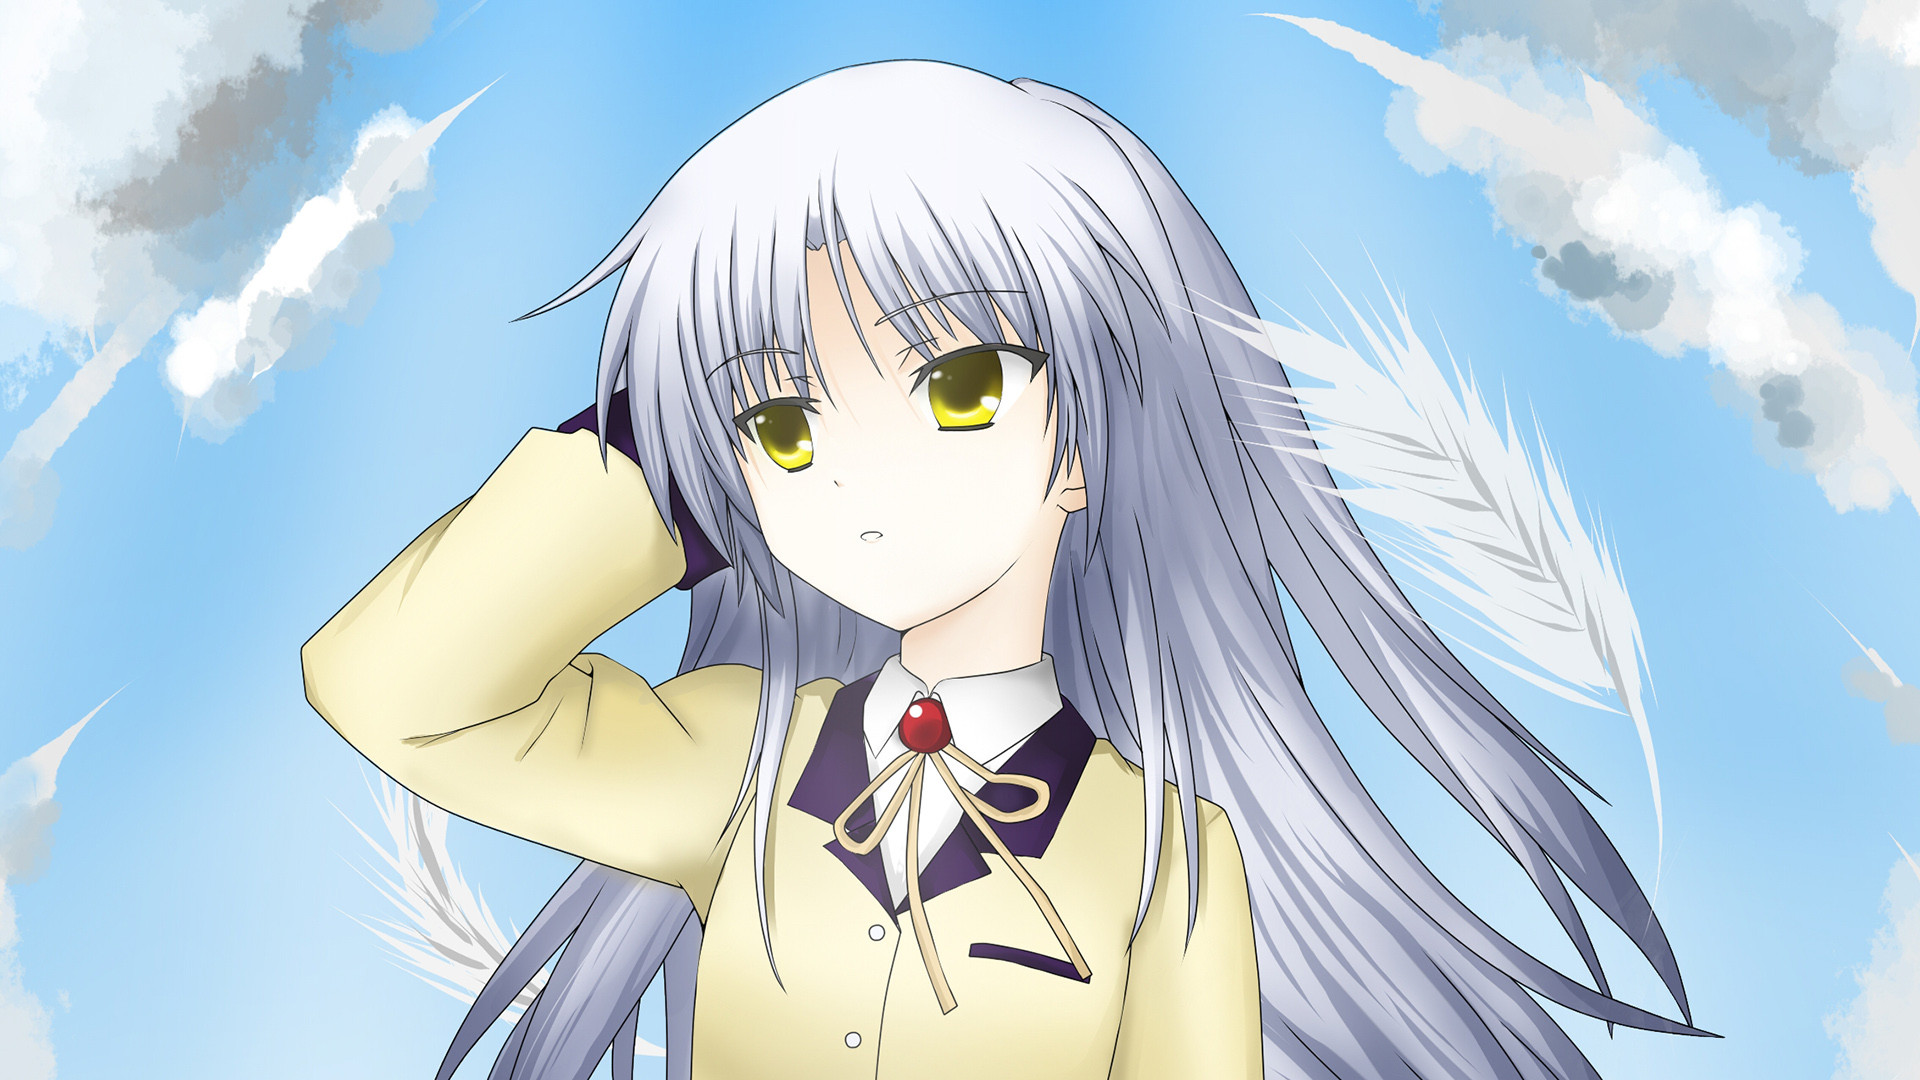 Anime Girl Wallpaper 1440x2960 Angel Beats Hd Wallpaper Background Image 1920x1080